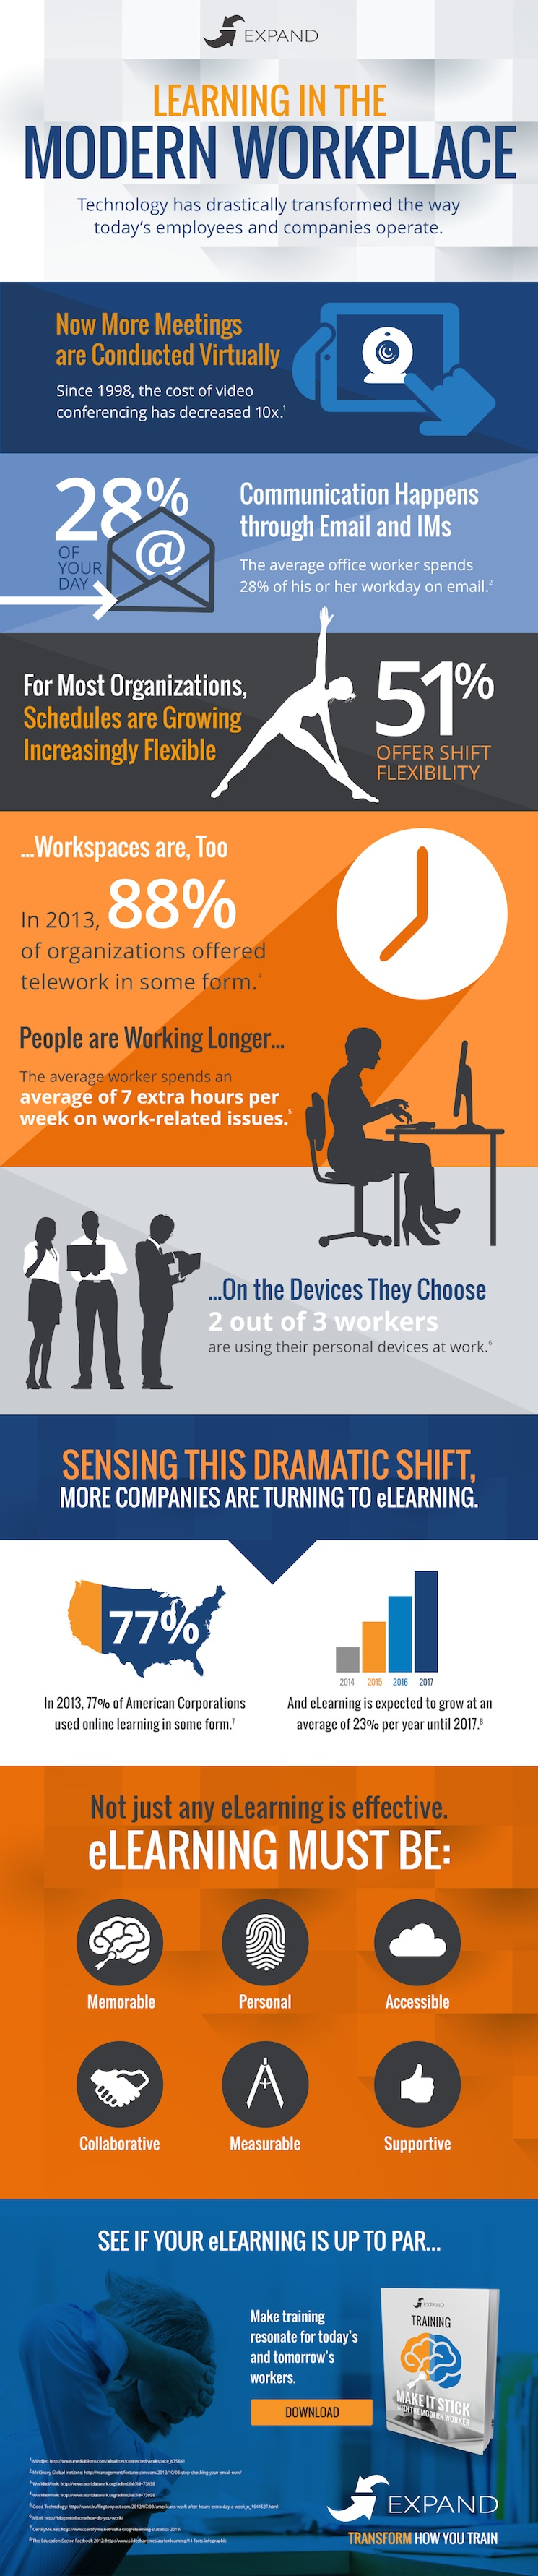 infographic-learning-in-the-modern-workplace-expand-interacctive